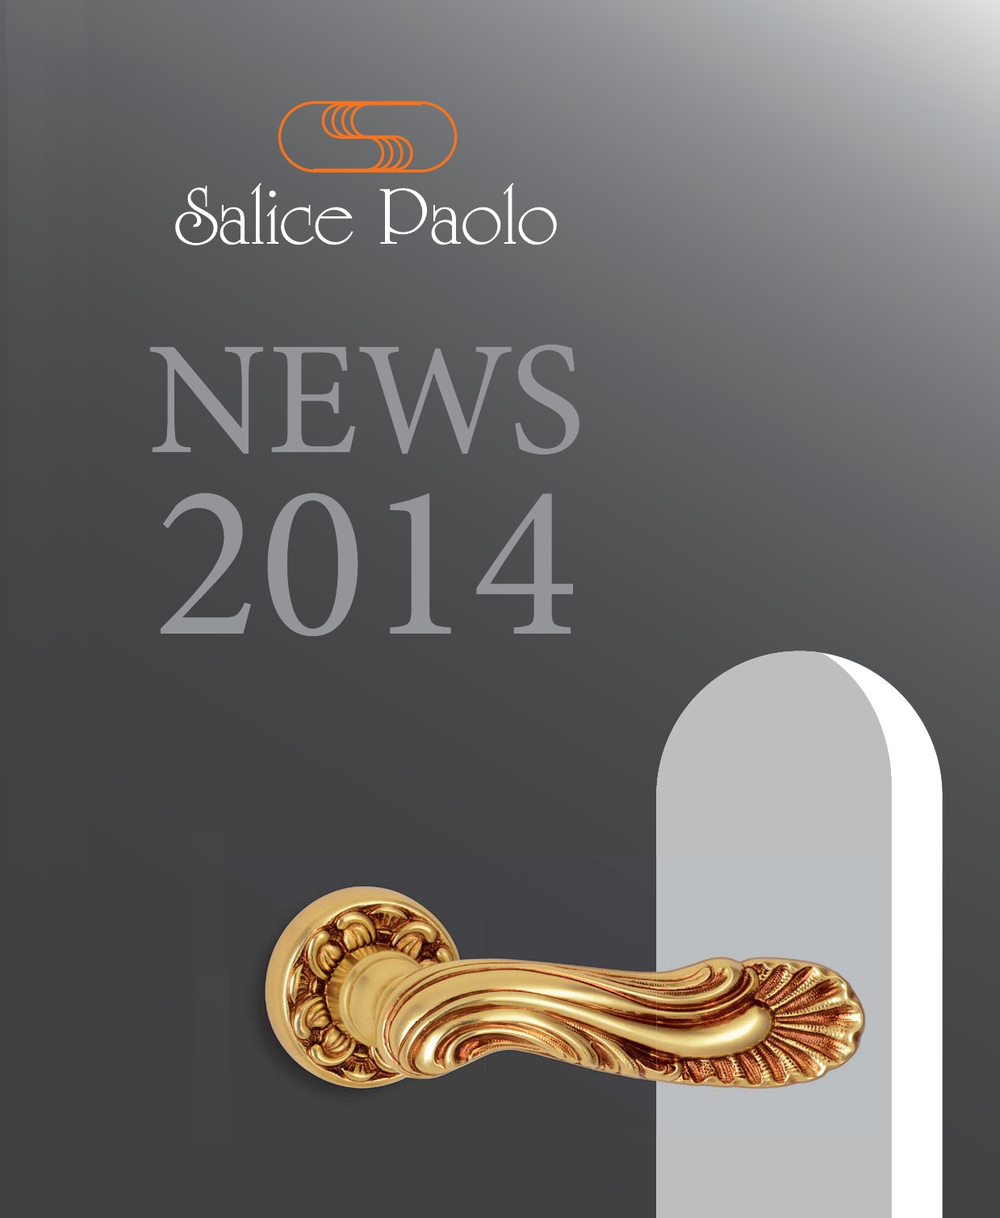 Salice paolo news 2014 catalogues international for Salice paolo